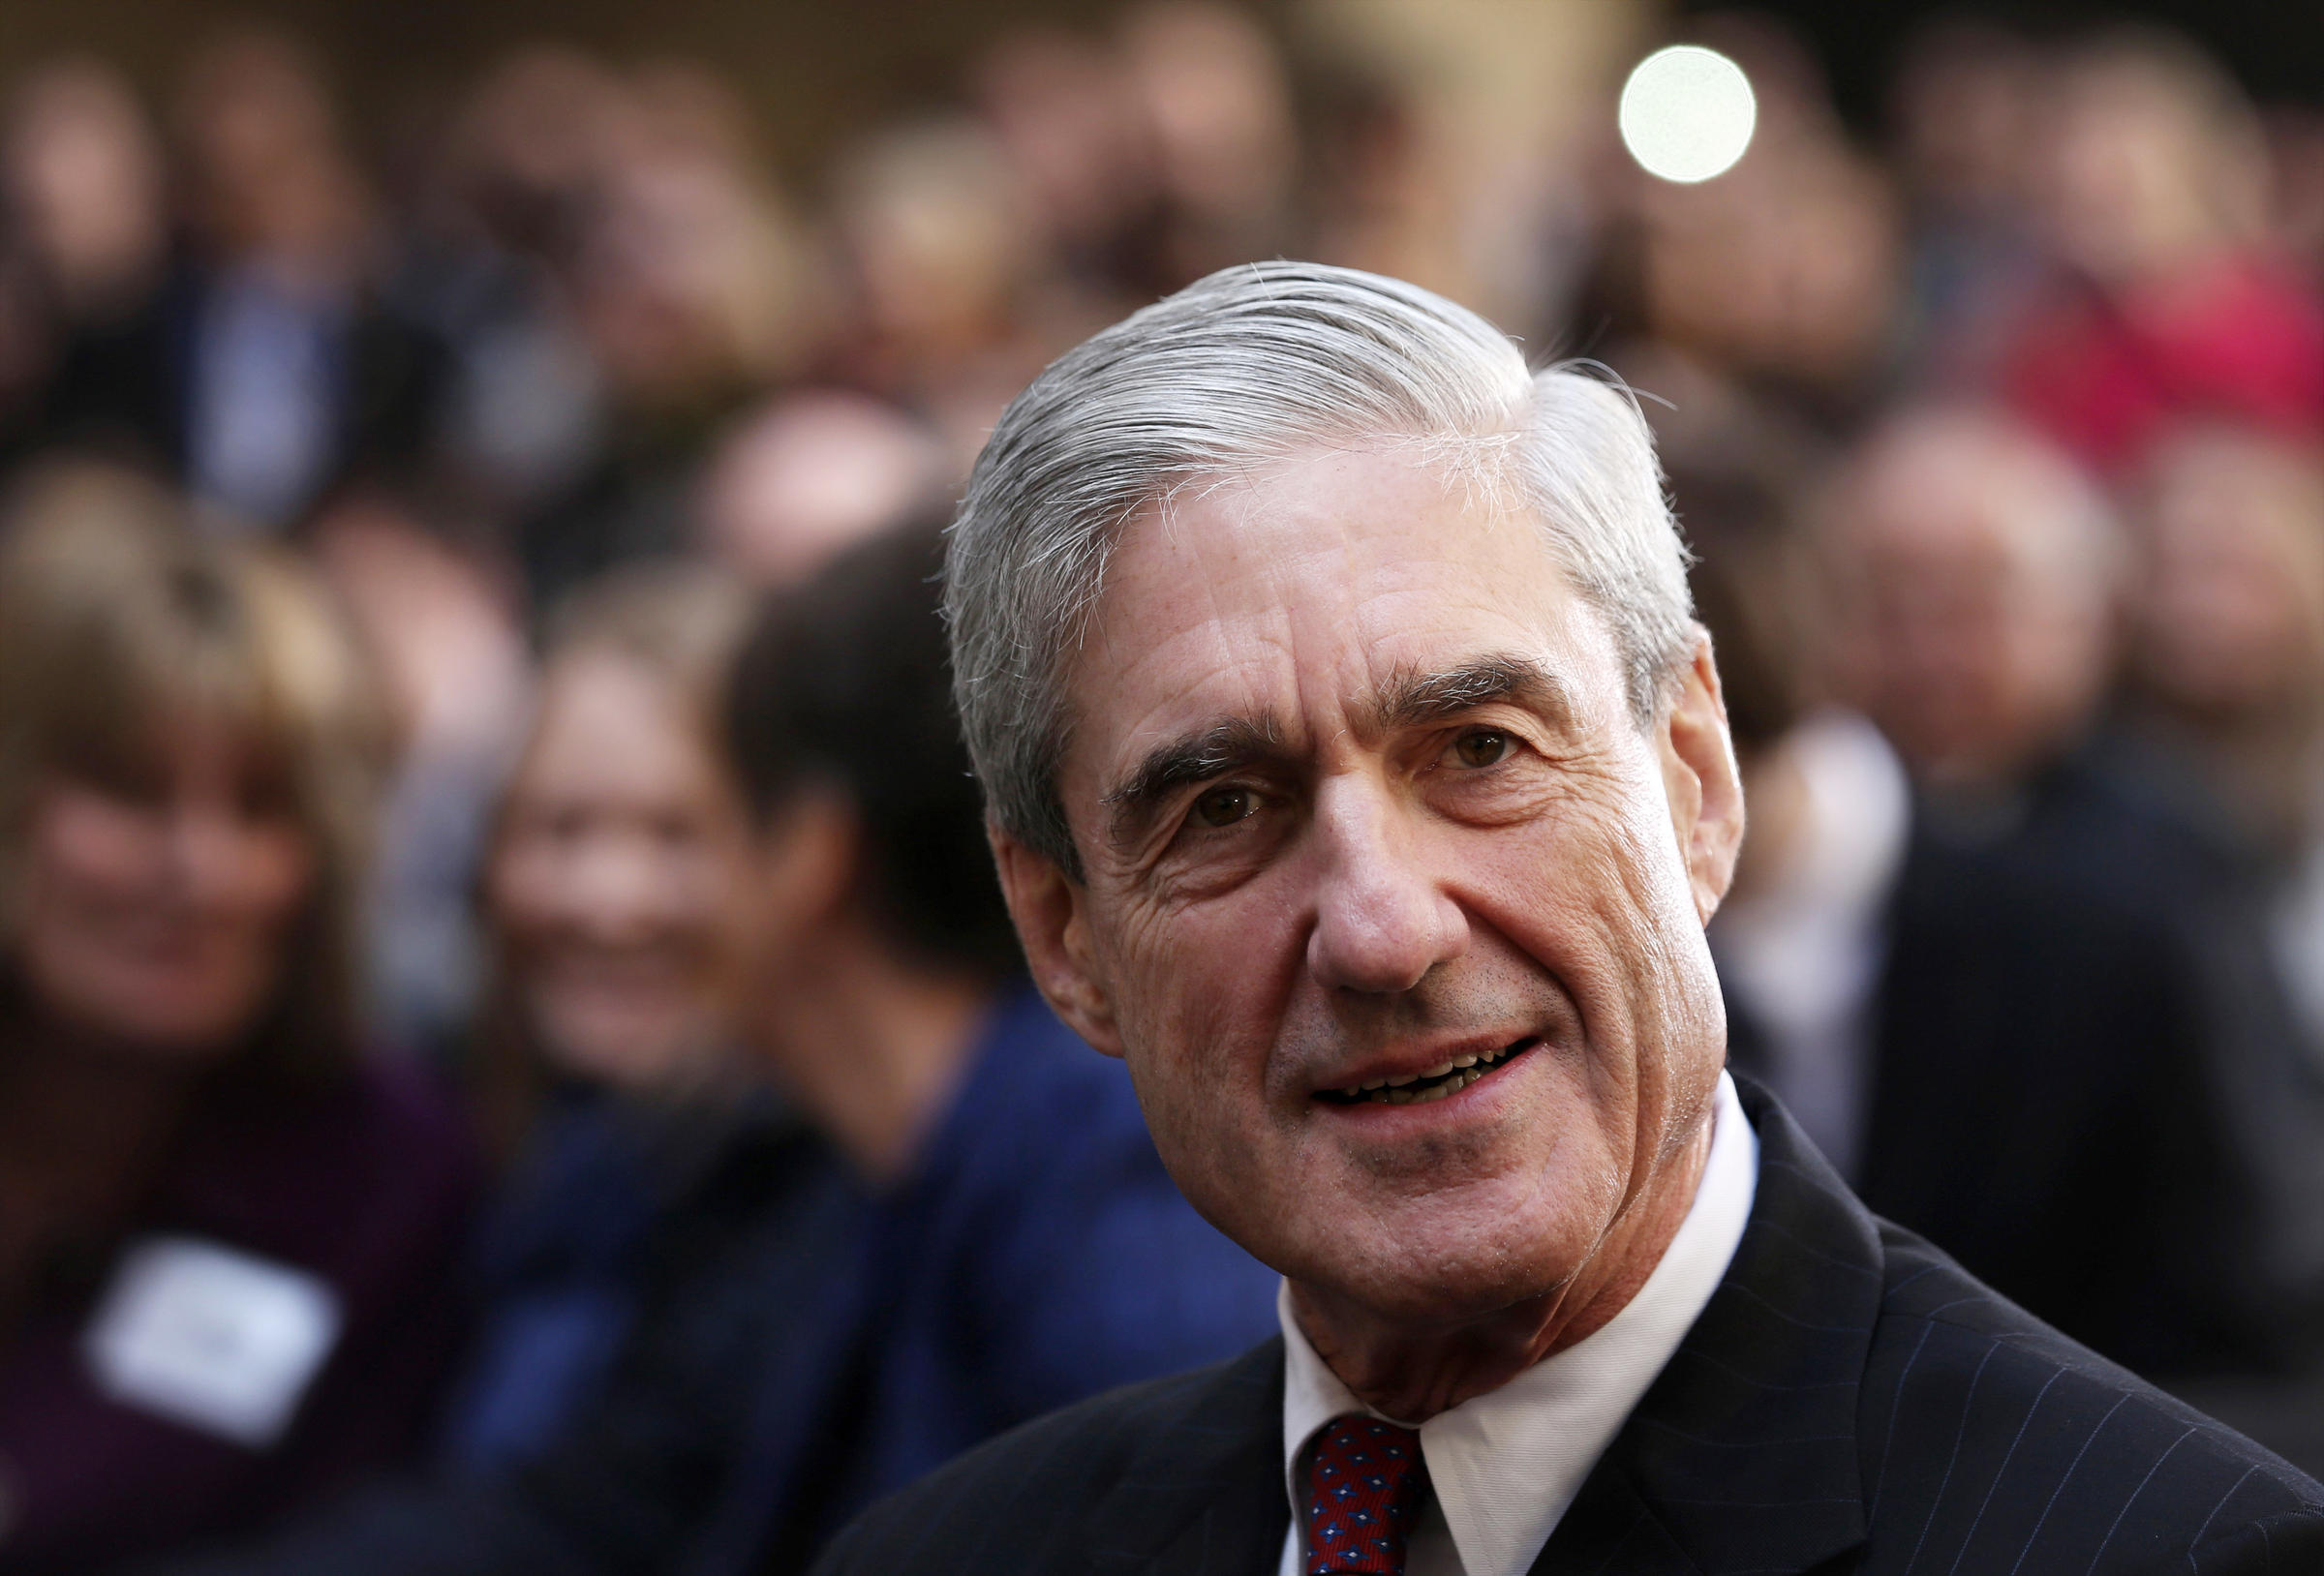 Even special counsel Robert Mueller may be fired by Trump